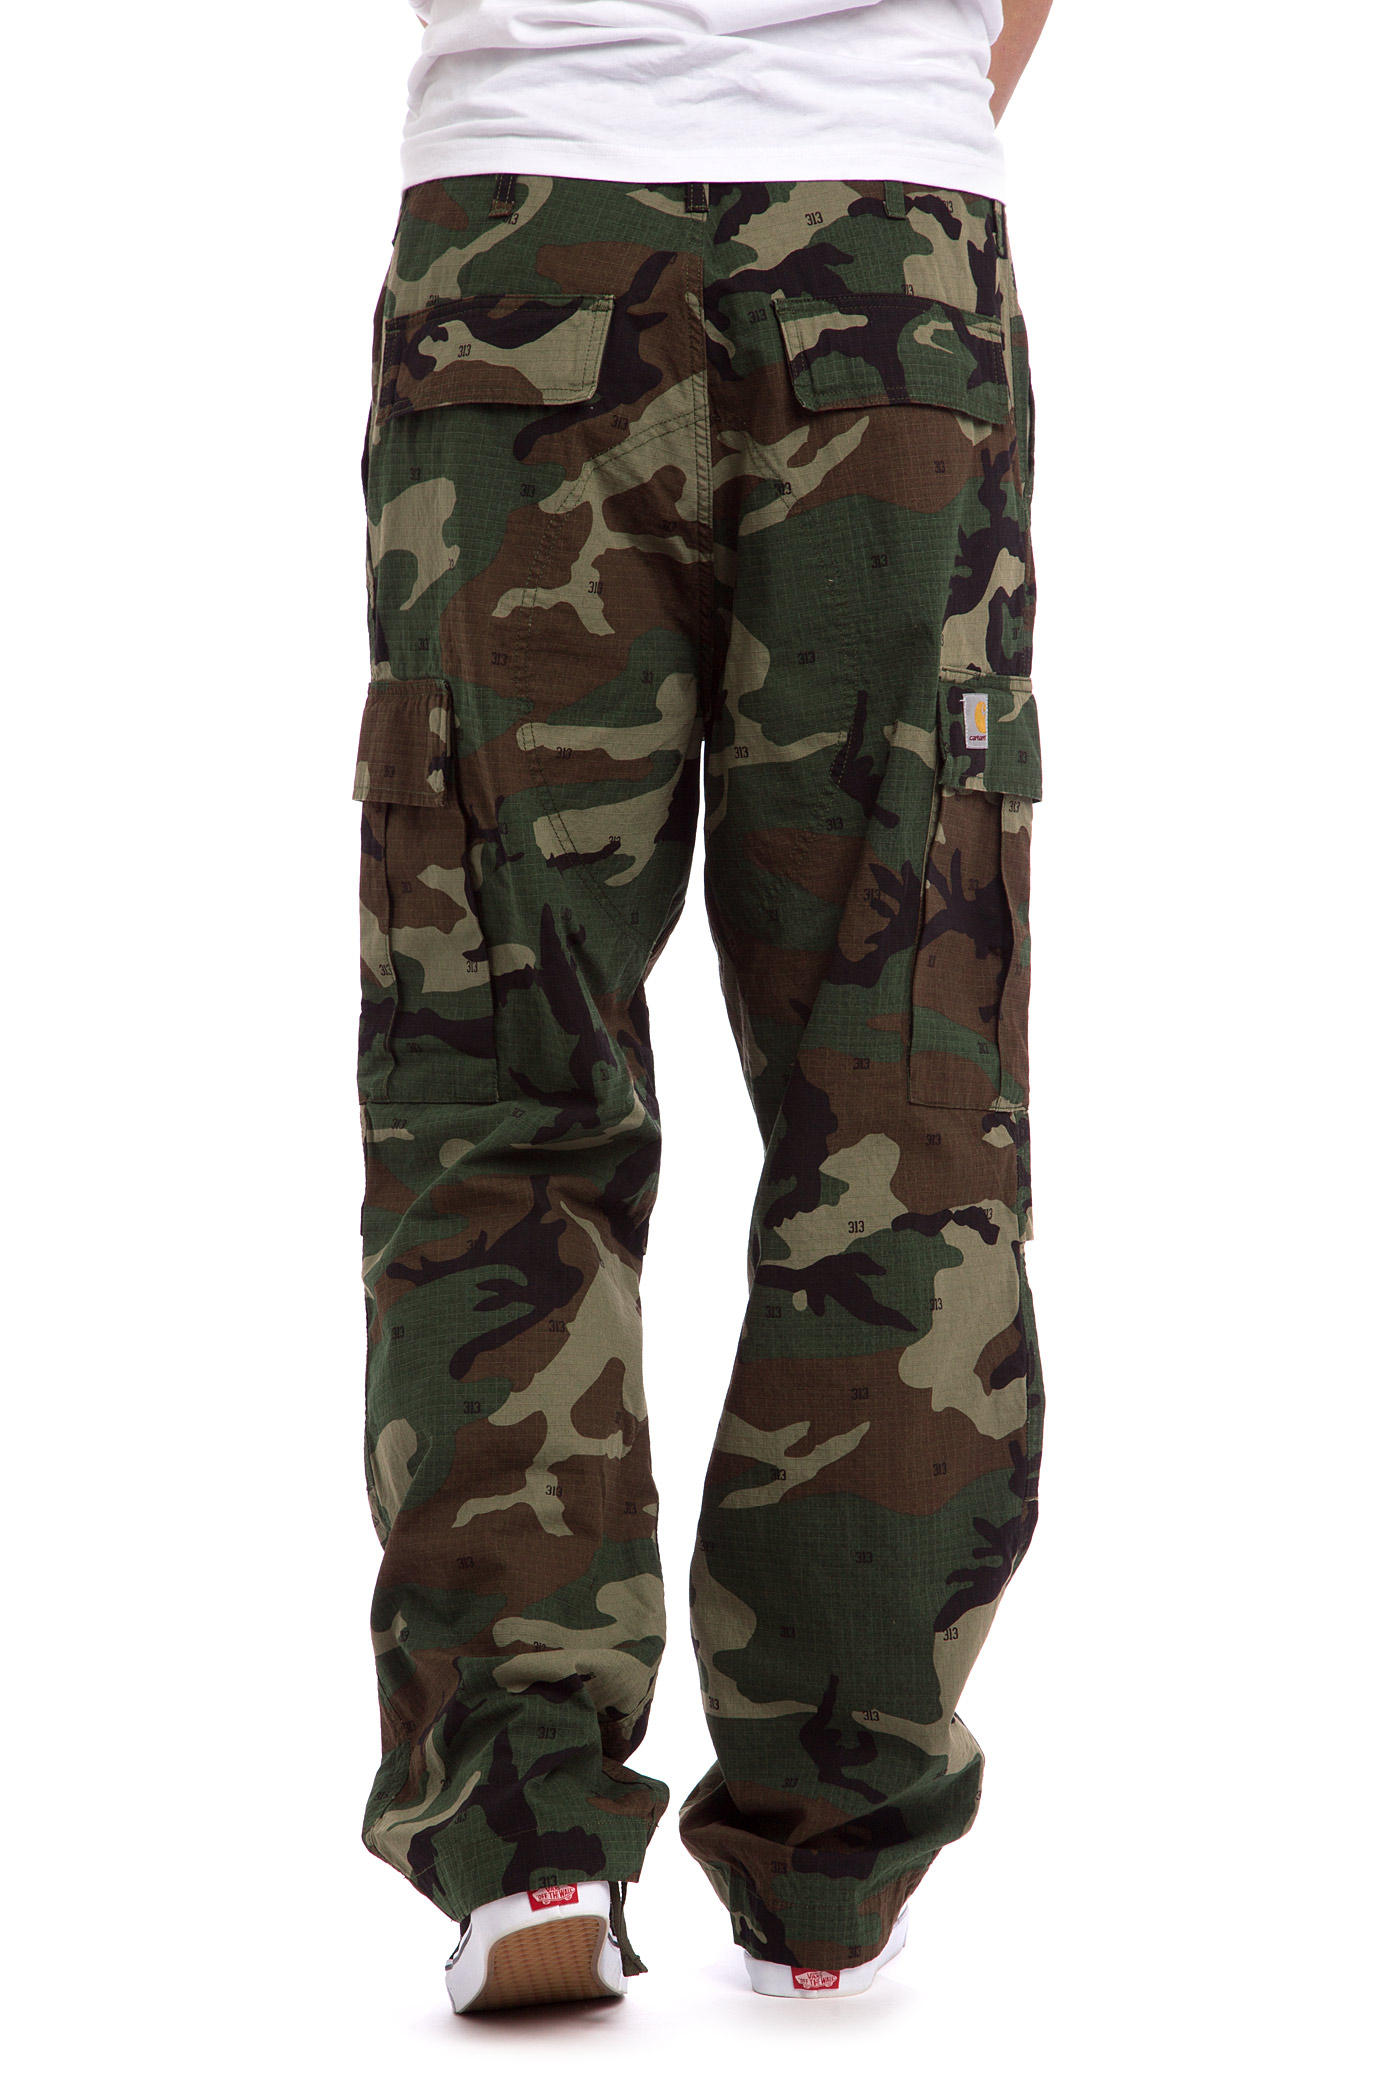 Find BDU Pants and ACU Pants in our stores or online today! Quality meets price with our Huge Selection of Camo Pants in either BDU or ACU Styles. Lots of colors to choose.